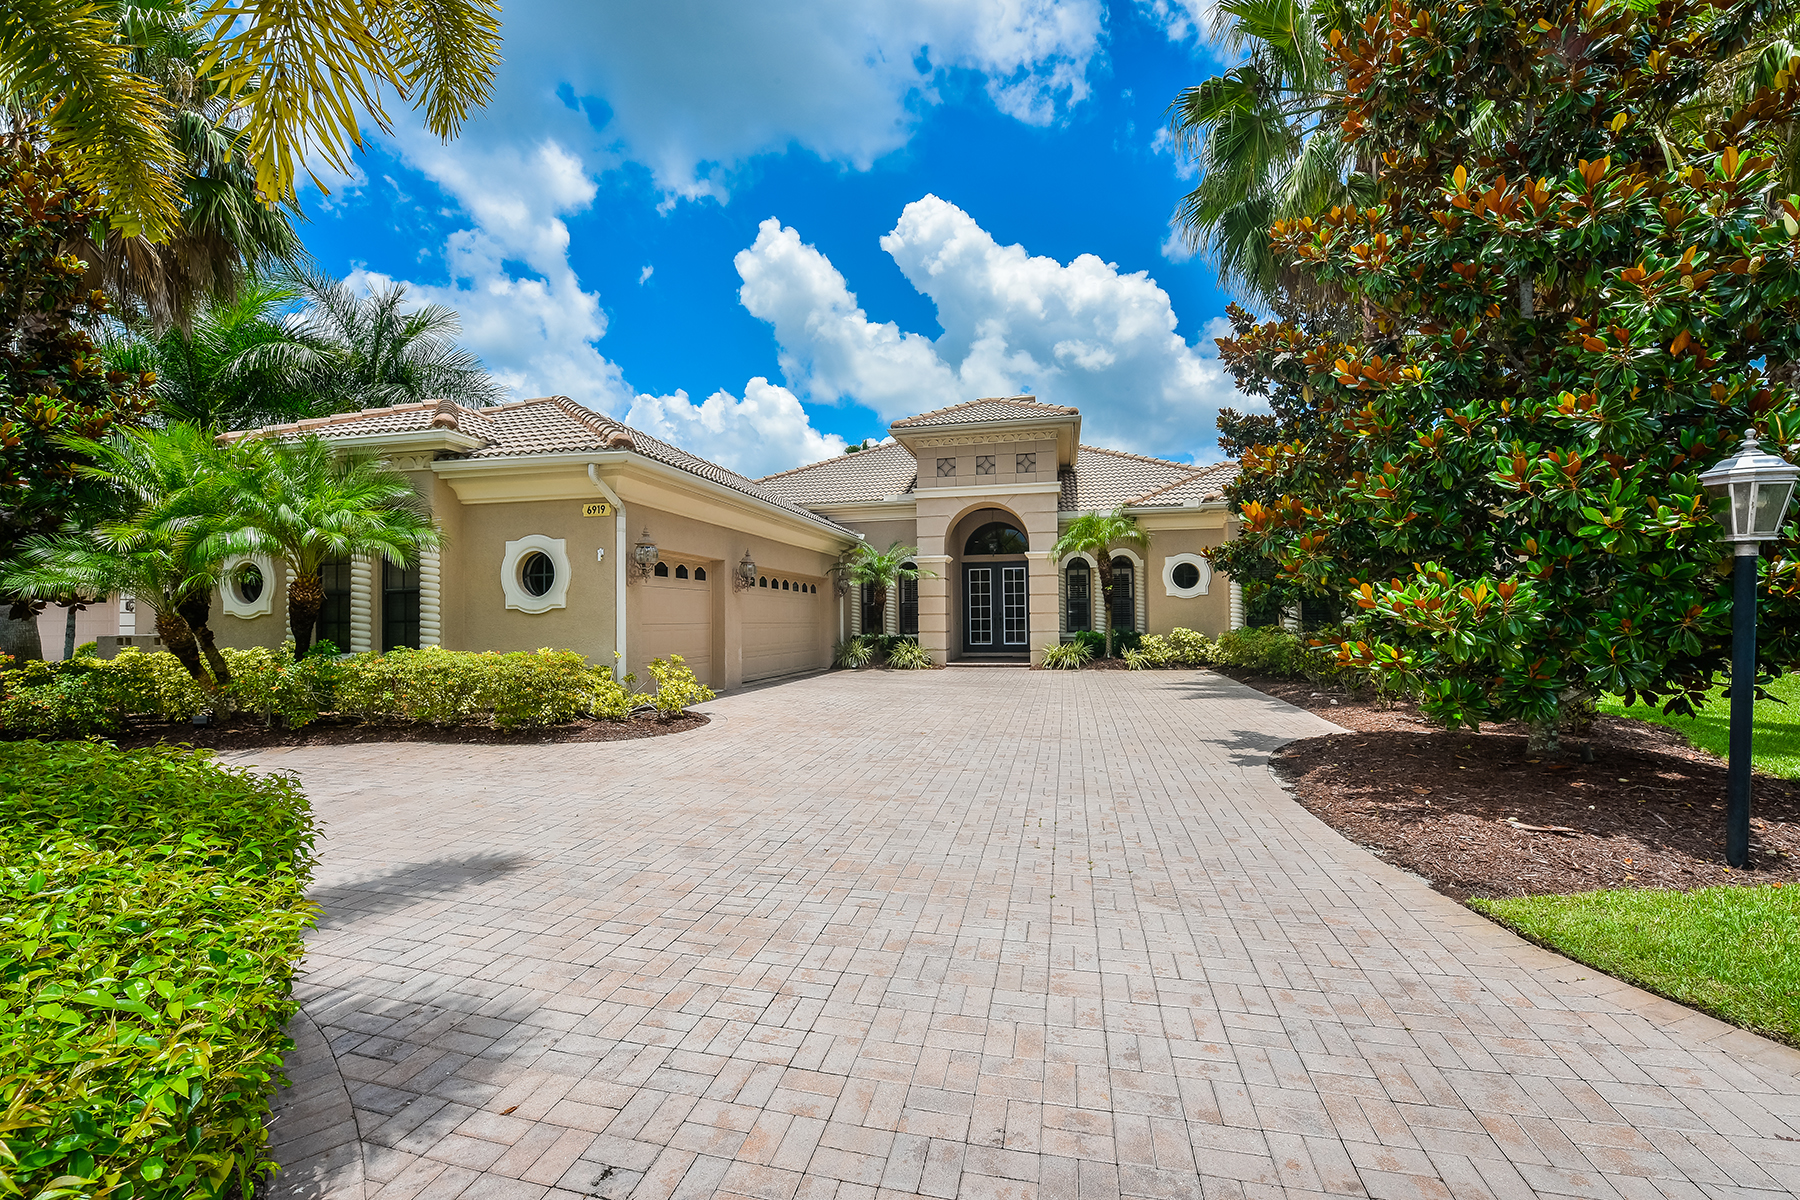 Single Family Home for Sale at DOMINION 6919 Dominion Ln Lakewood Ranch, Florida, 34202 United States